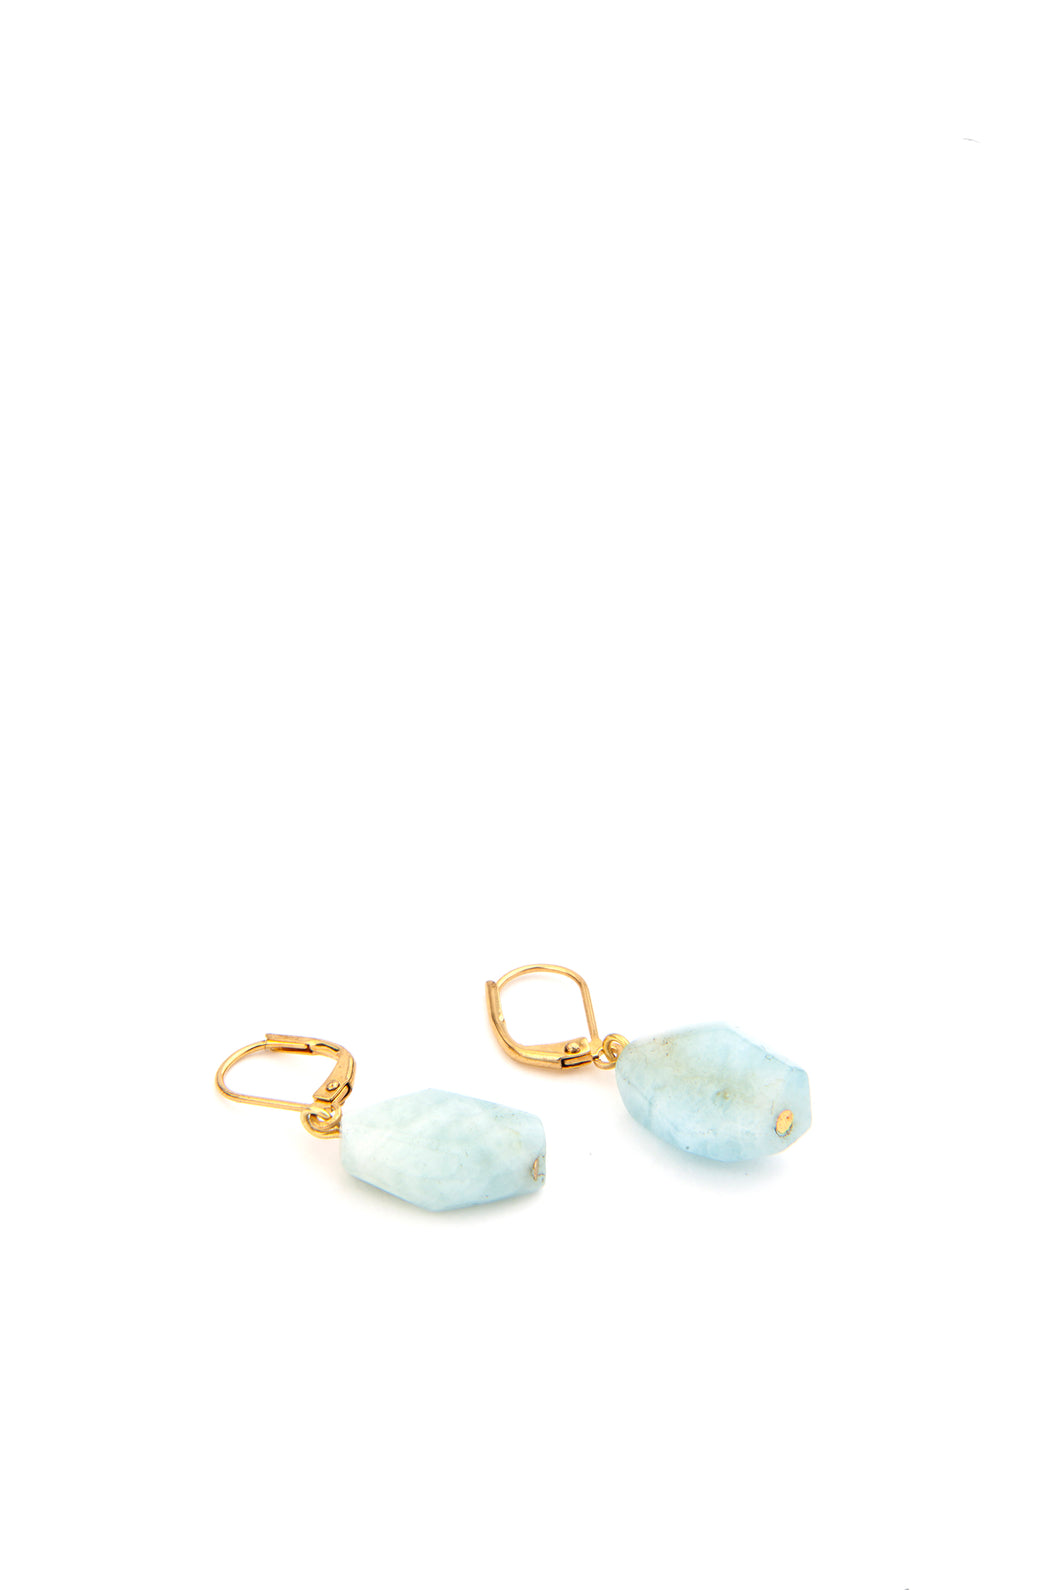 Rocks Aquamarine Geo Earrings